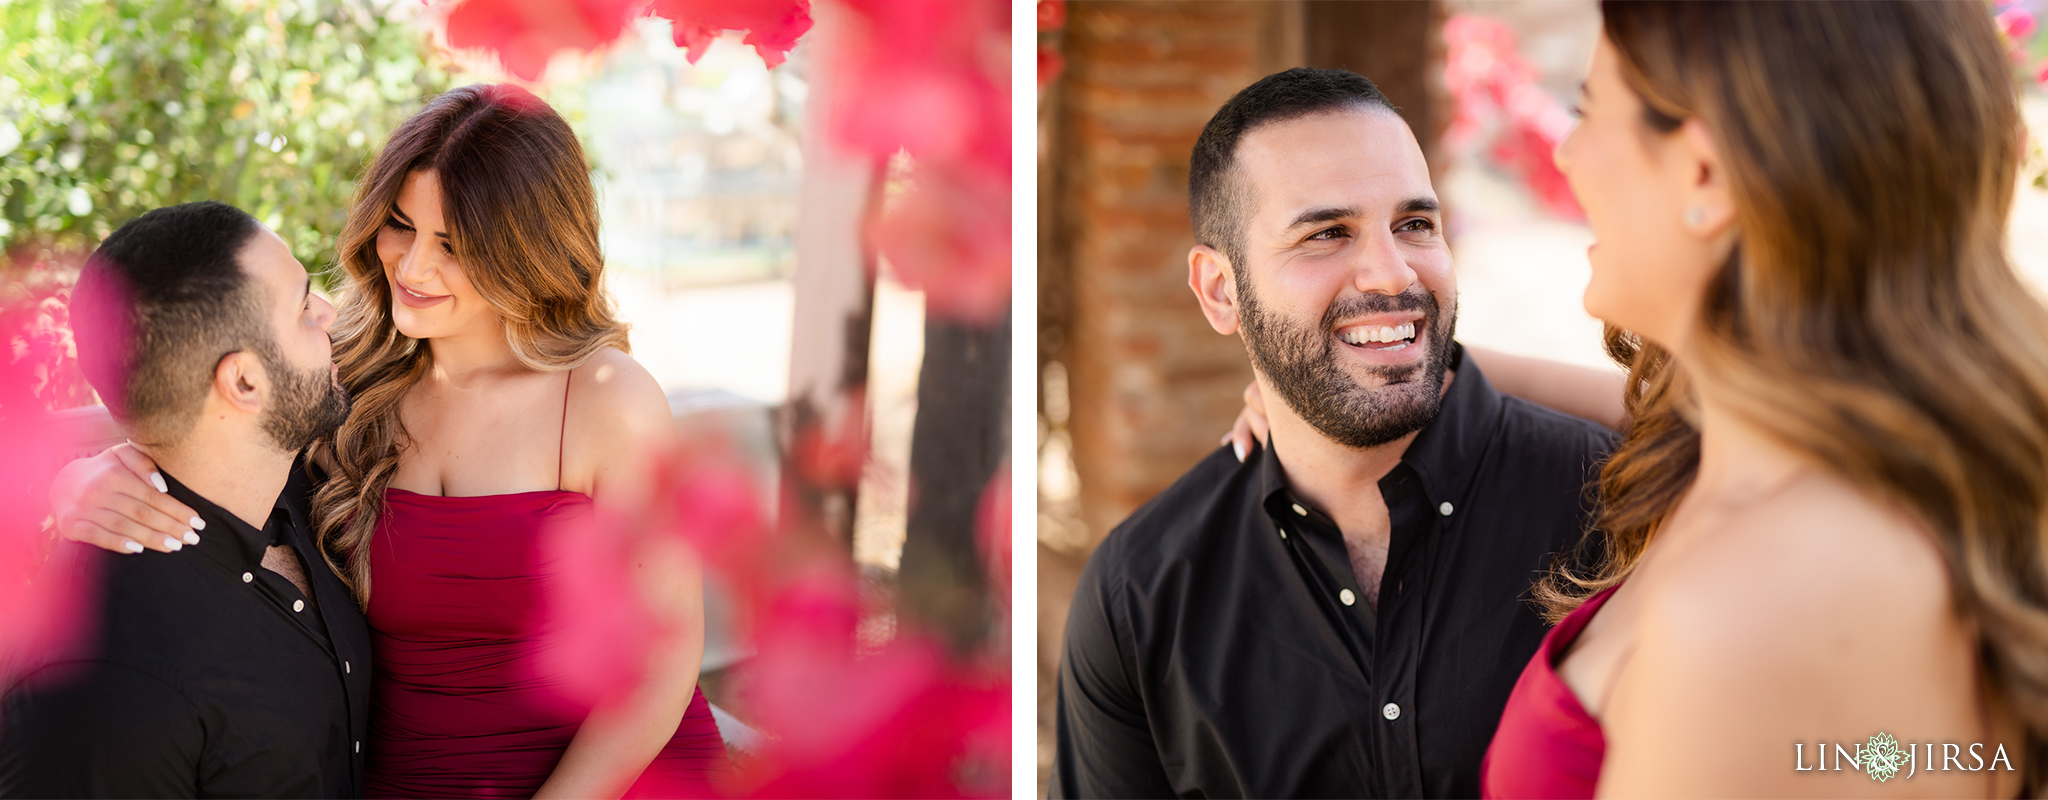 03 Mission San Juan Capistrano Orange County Engagement Photography